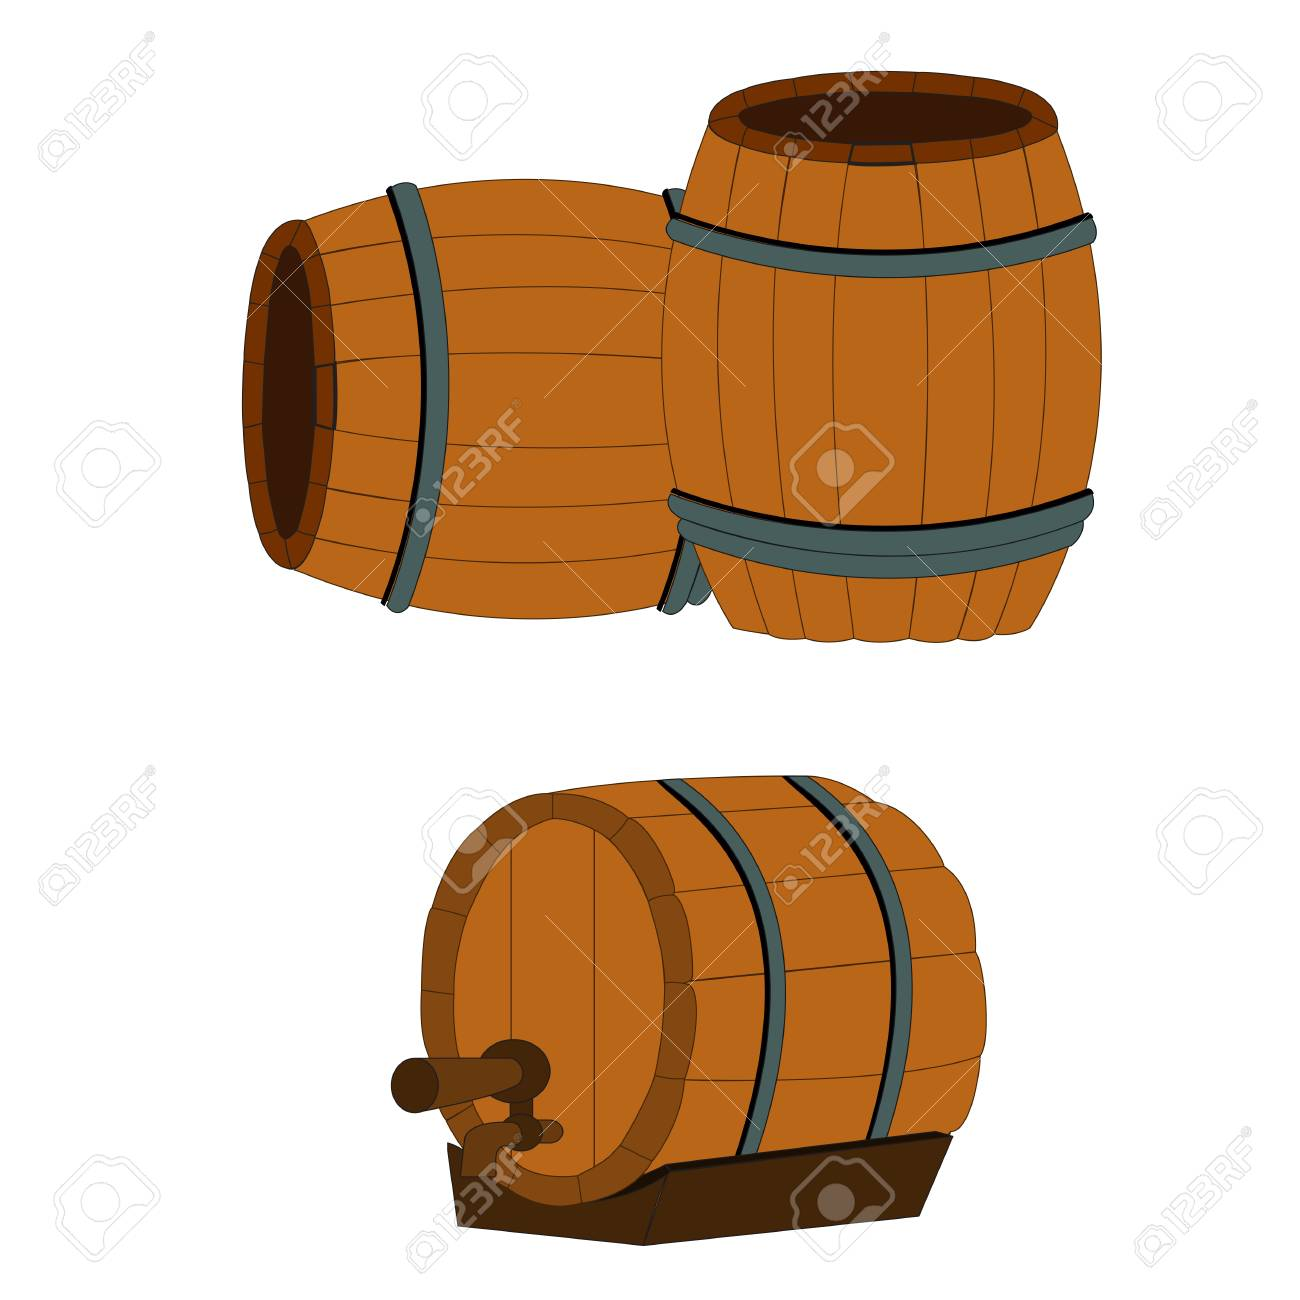 Wooden Barrels Round Wooden Barrel Royalty Free Cliparts Vectors And Stock Illustration Image 118968675